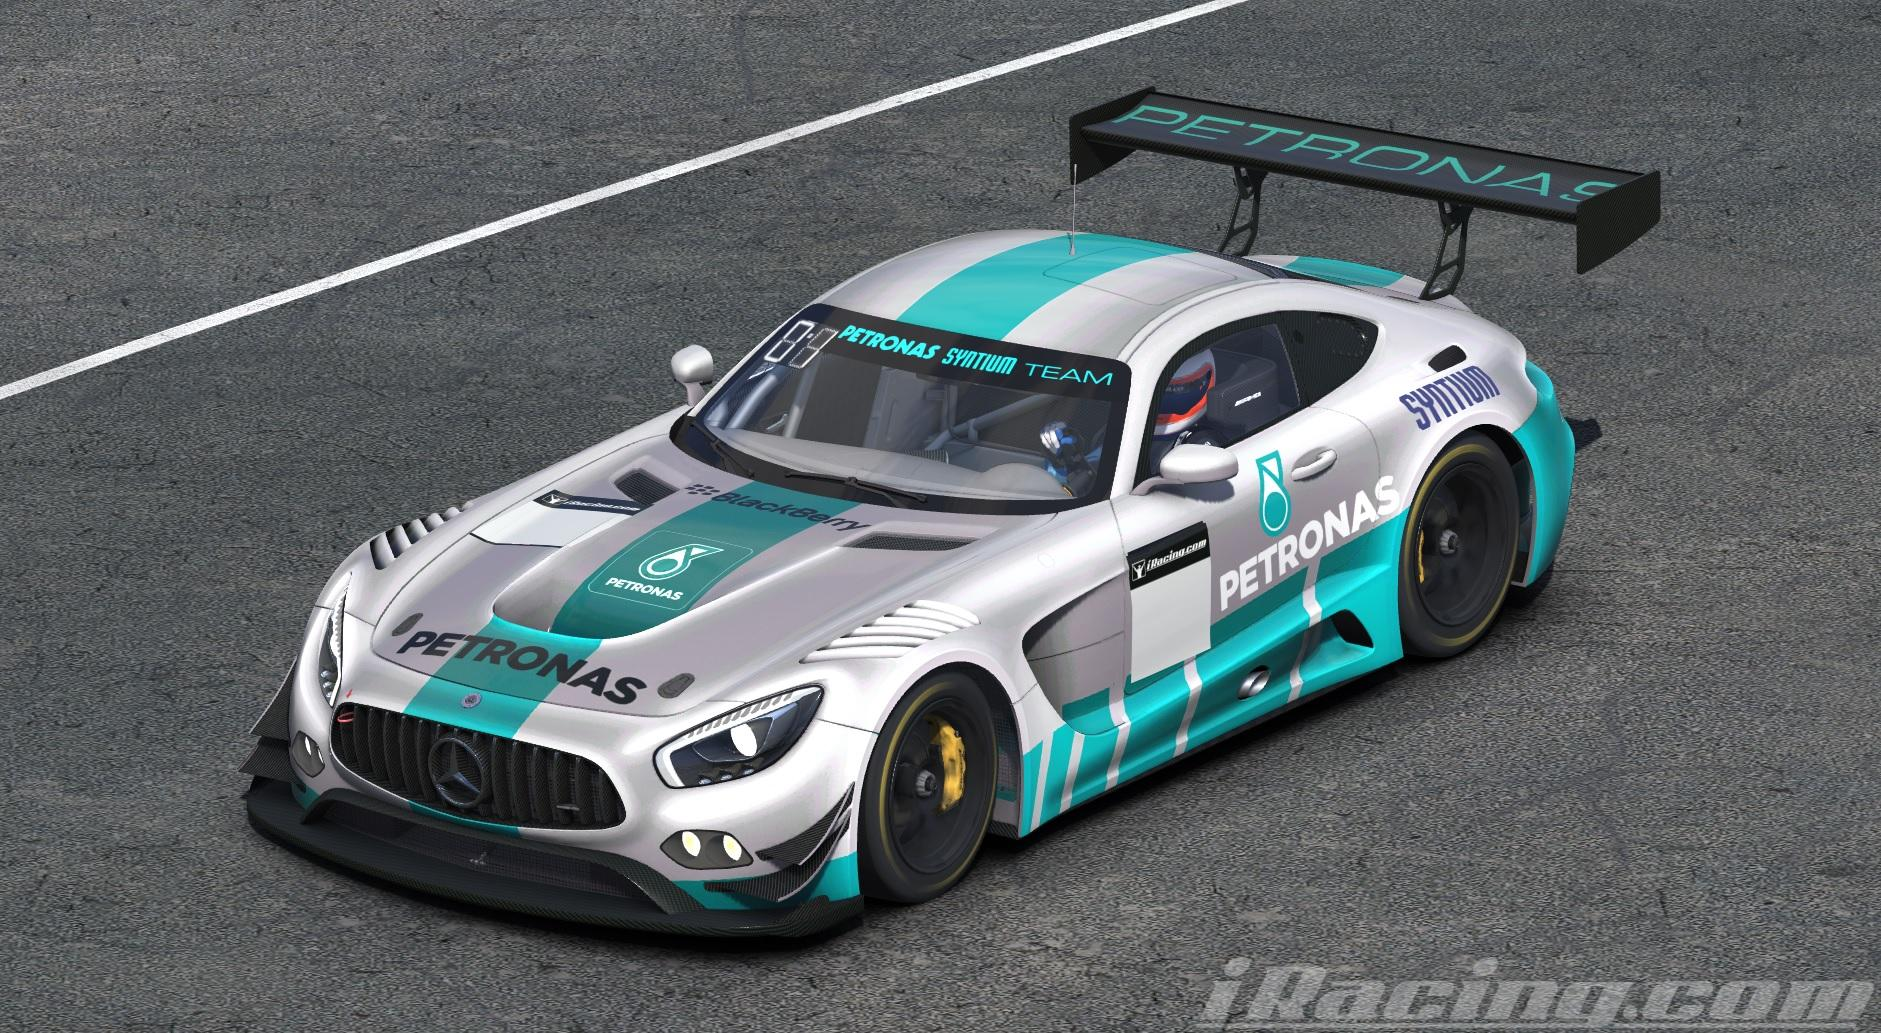 petronas mercedes amg gt3 by chris bull trading paints. Black Bedroom Furniture Sets. Home Design Ideas